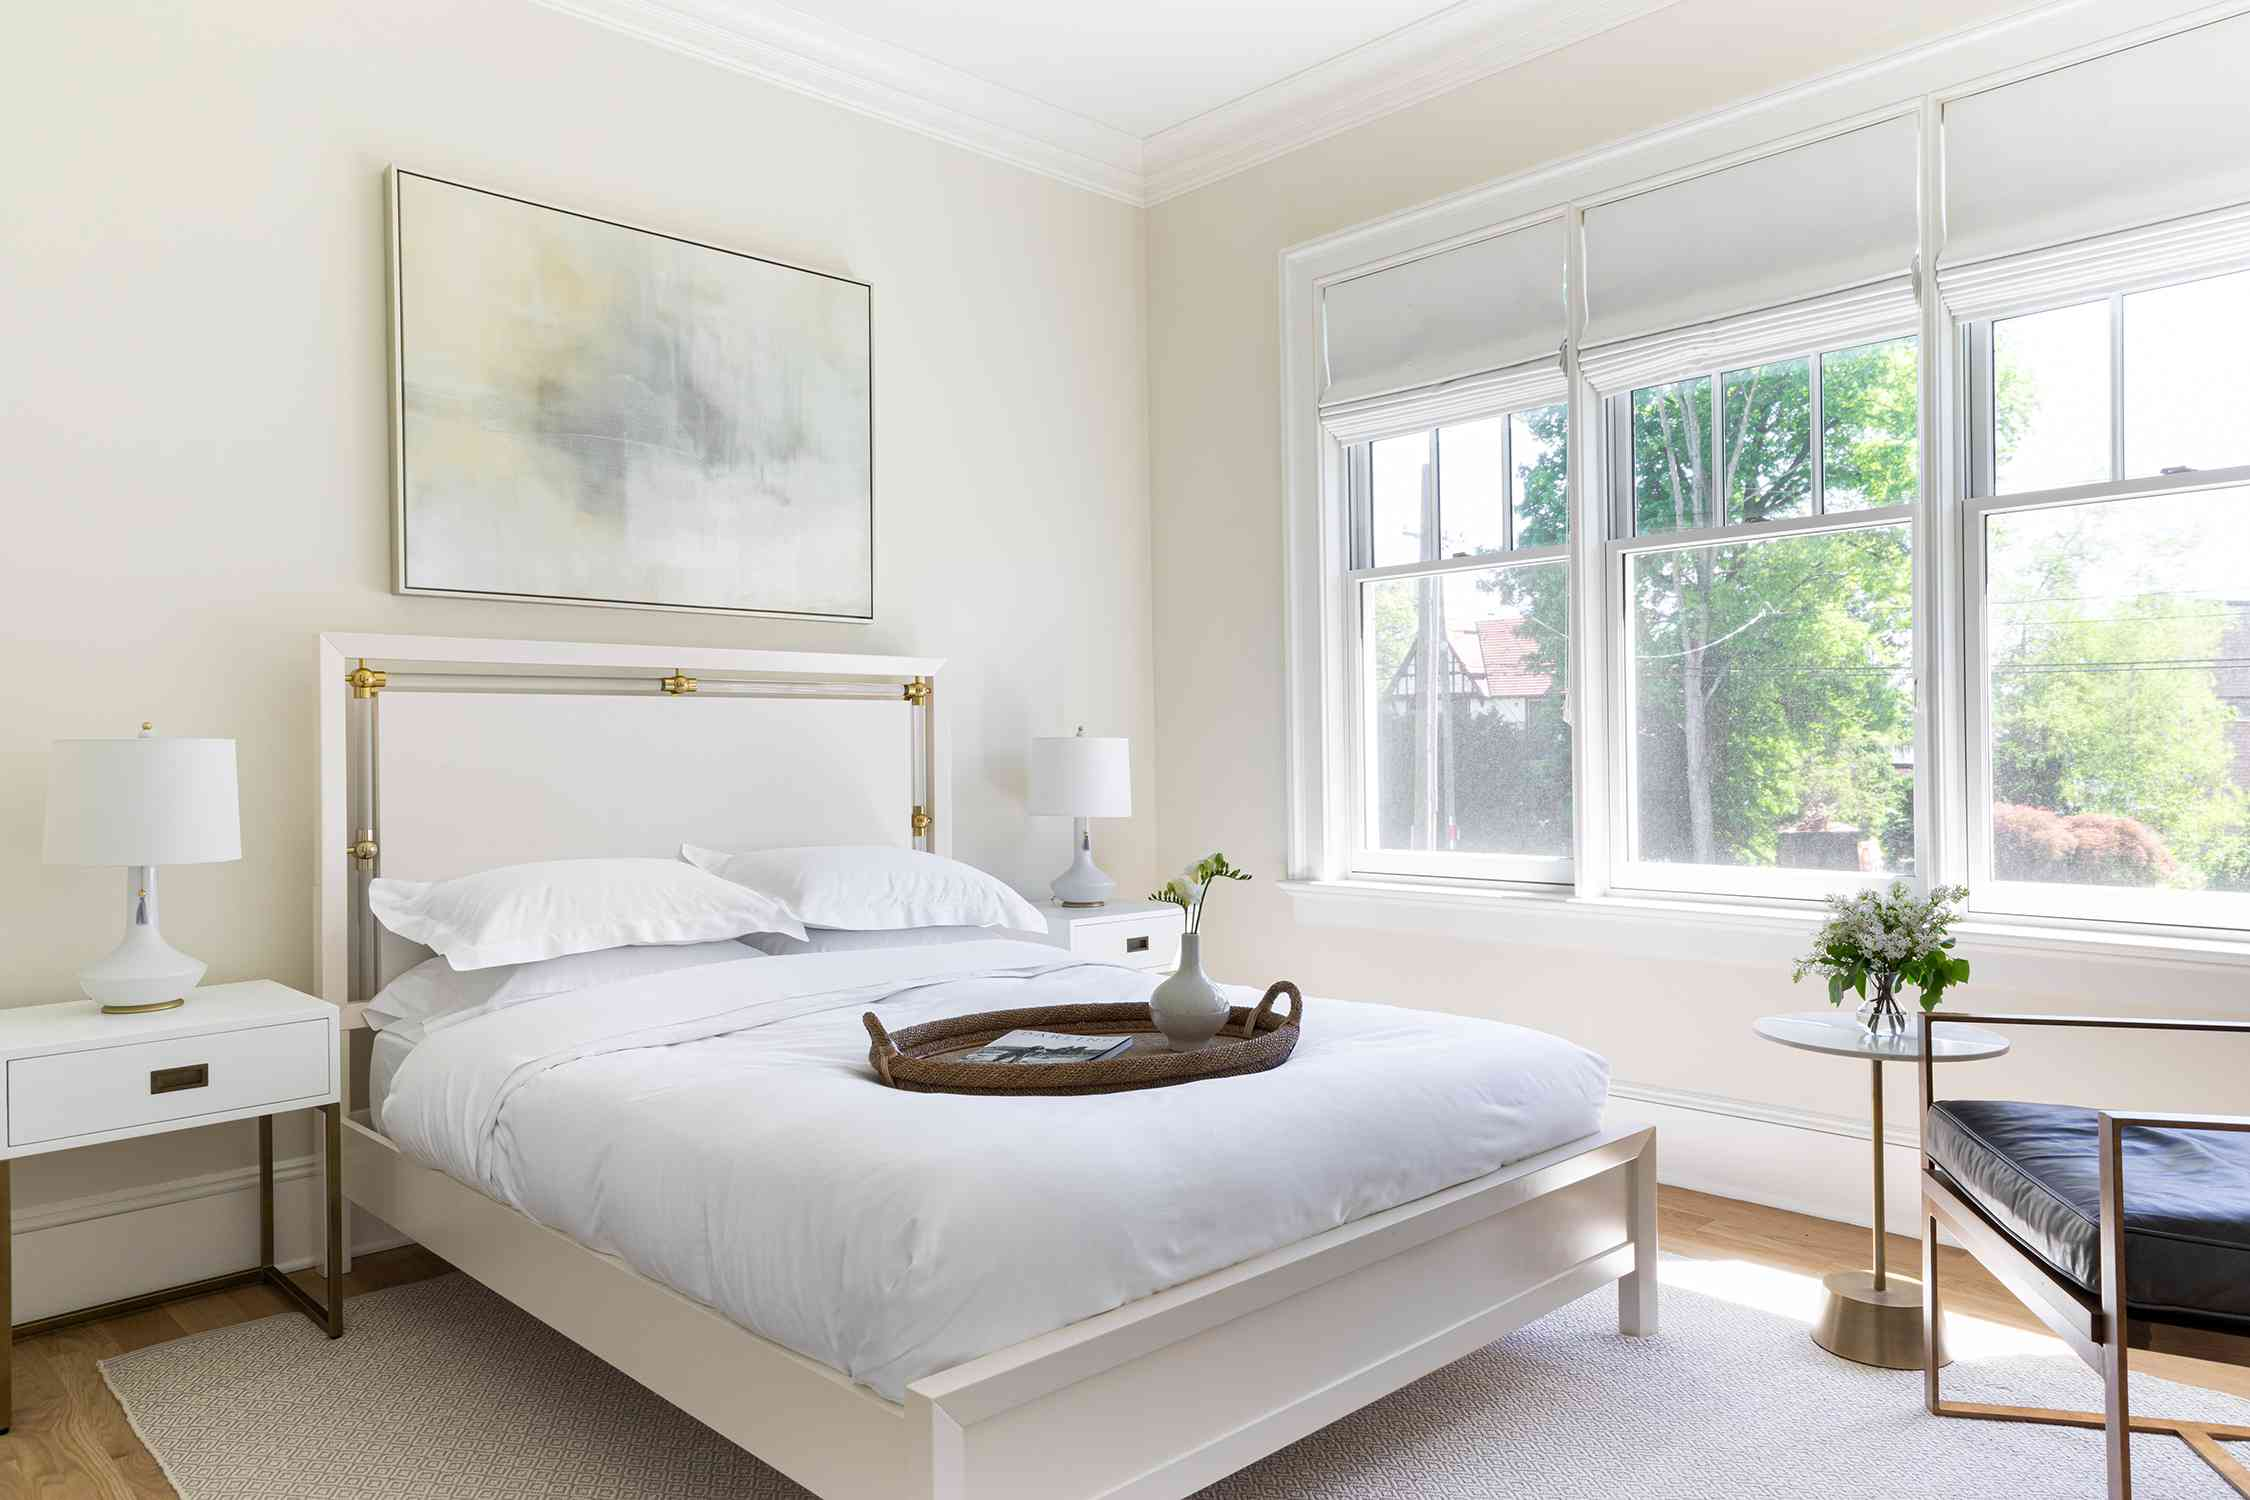 new jersey home tour - guest bedroom